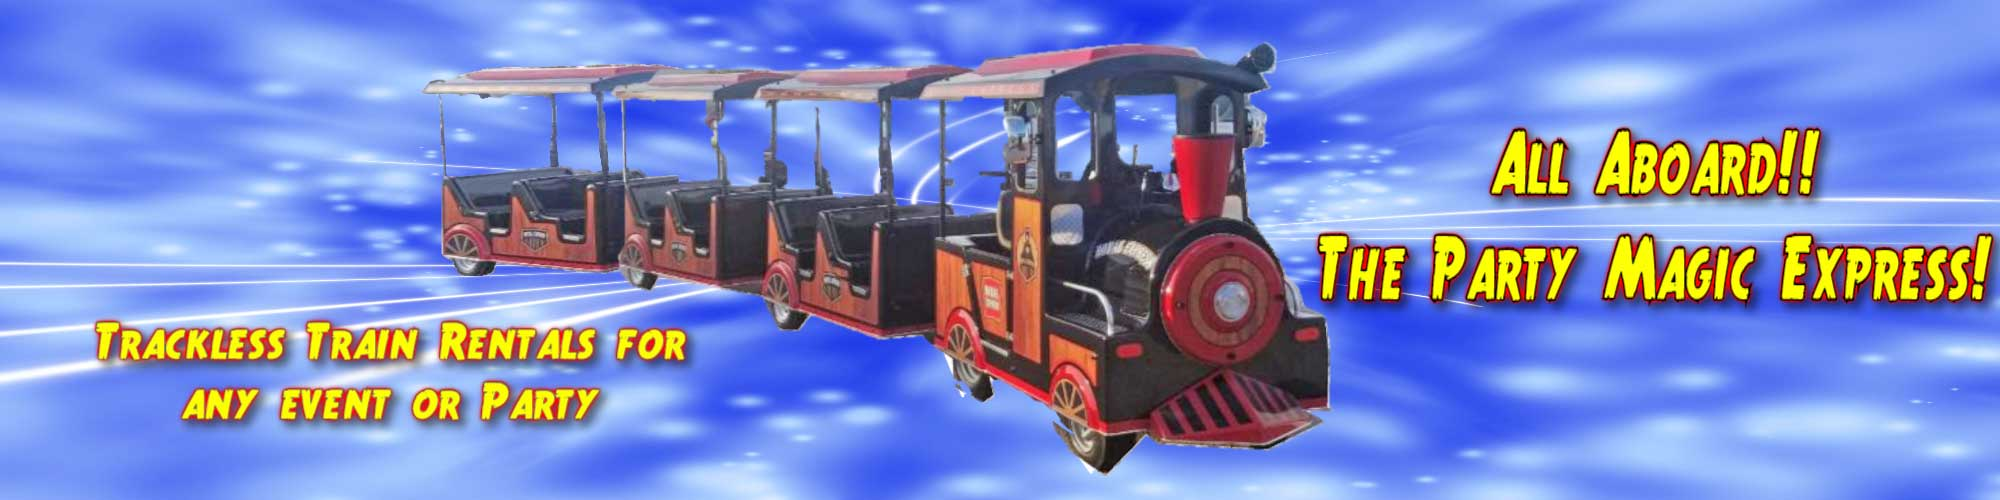 Trackless Train Rentals Texas